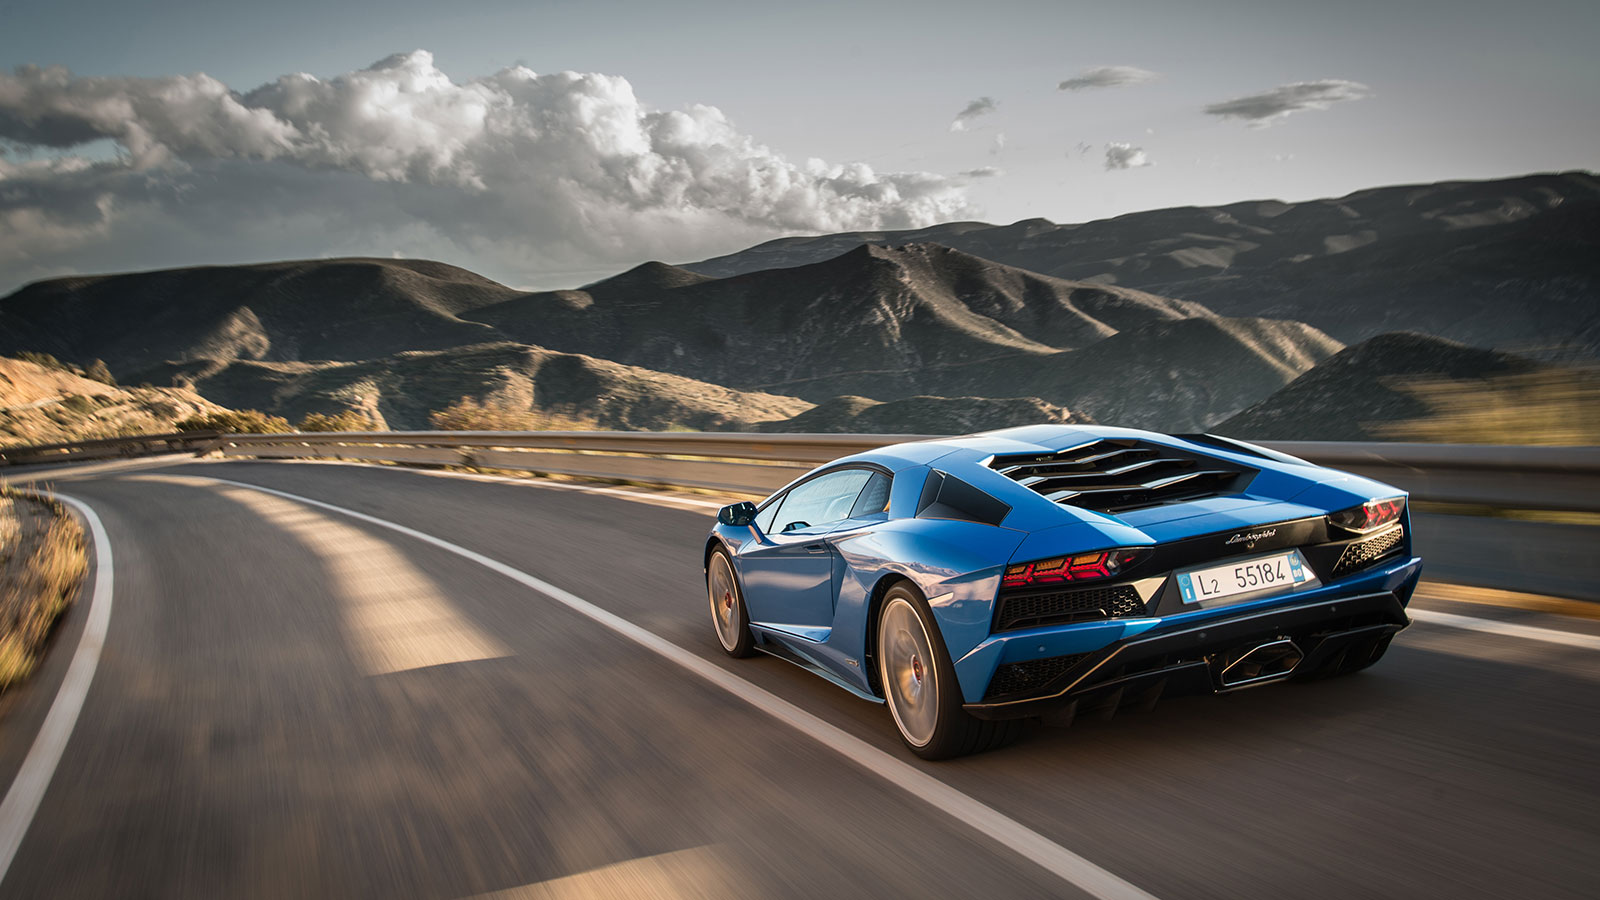 Lamborghini Aventador S Coupe - The Icon Reborn image 27